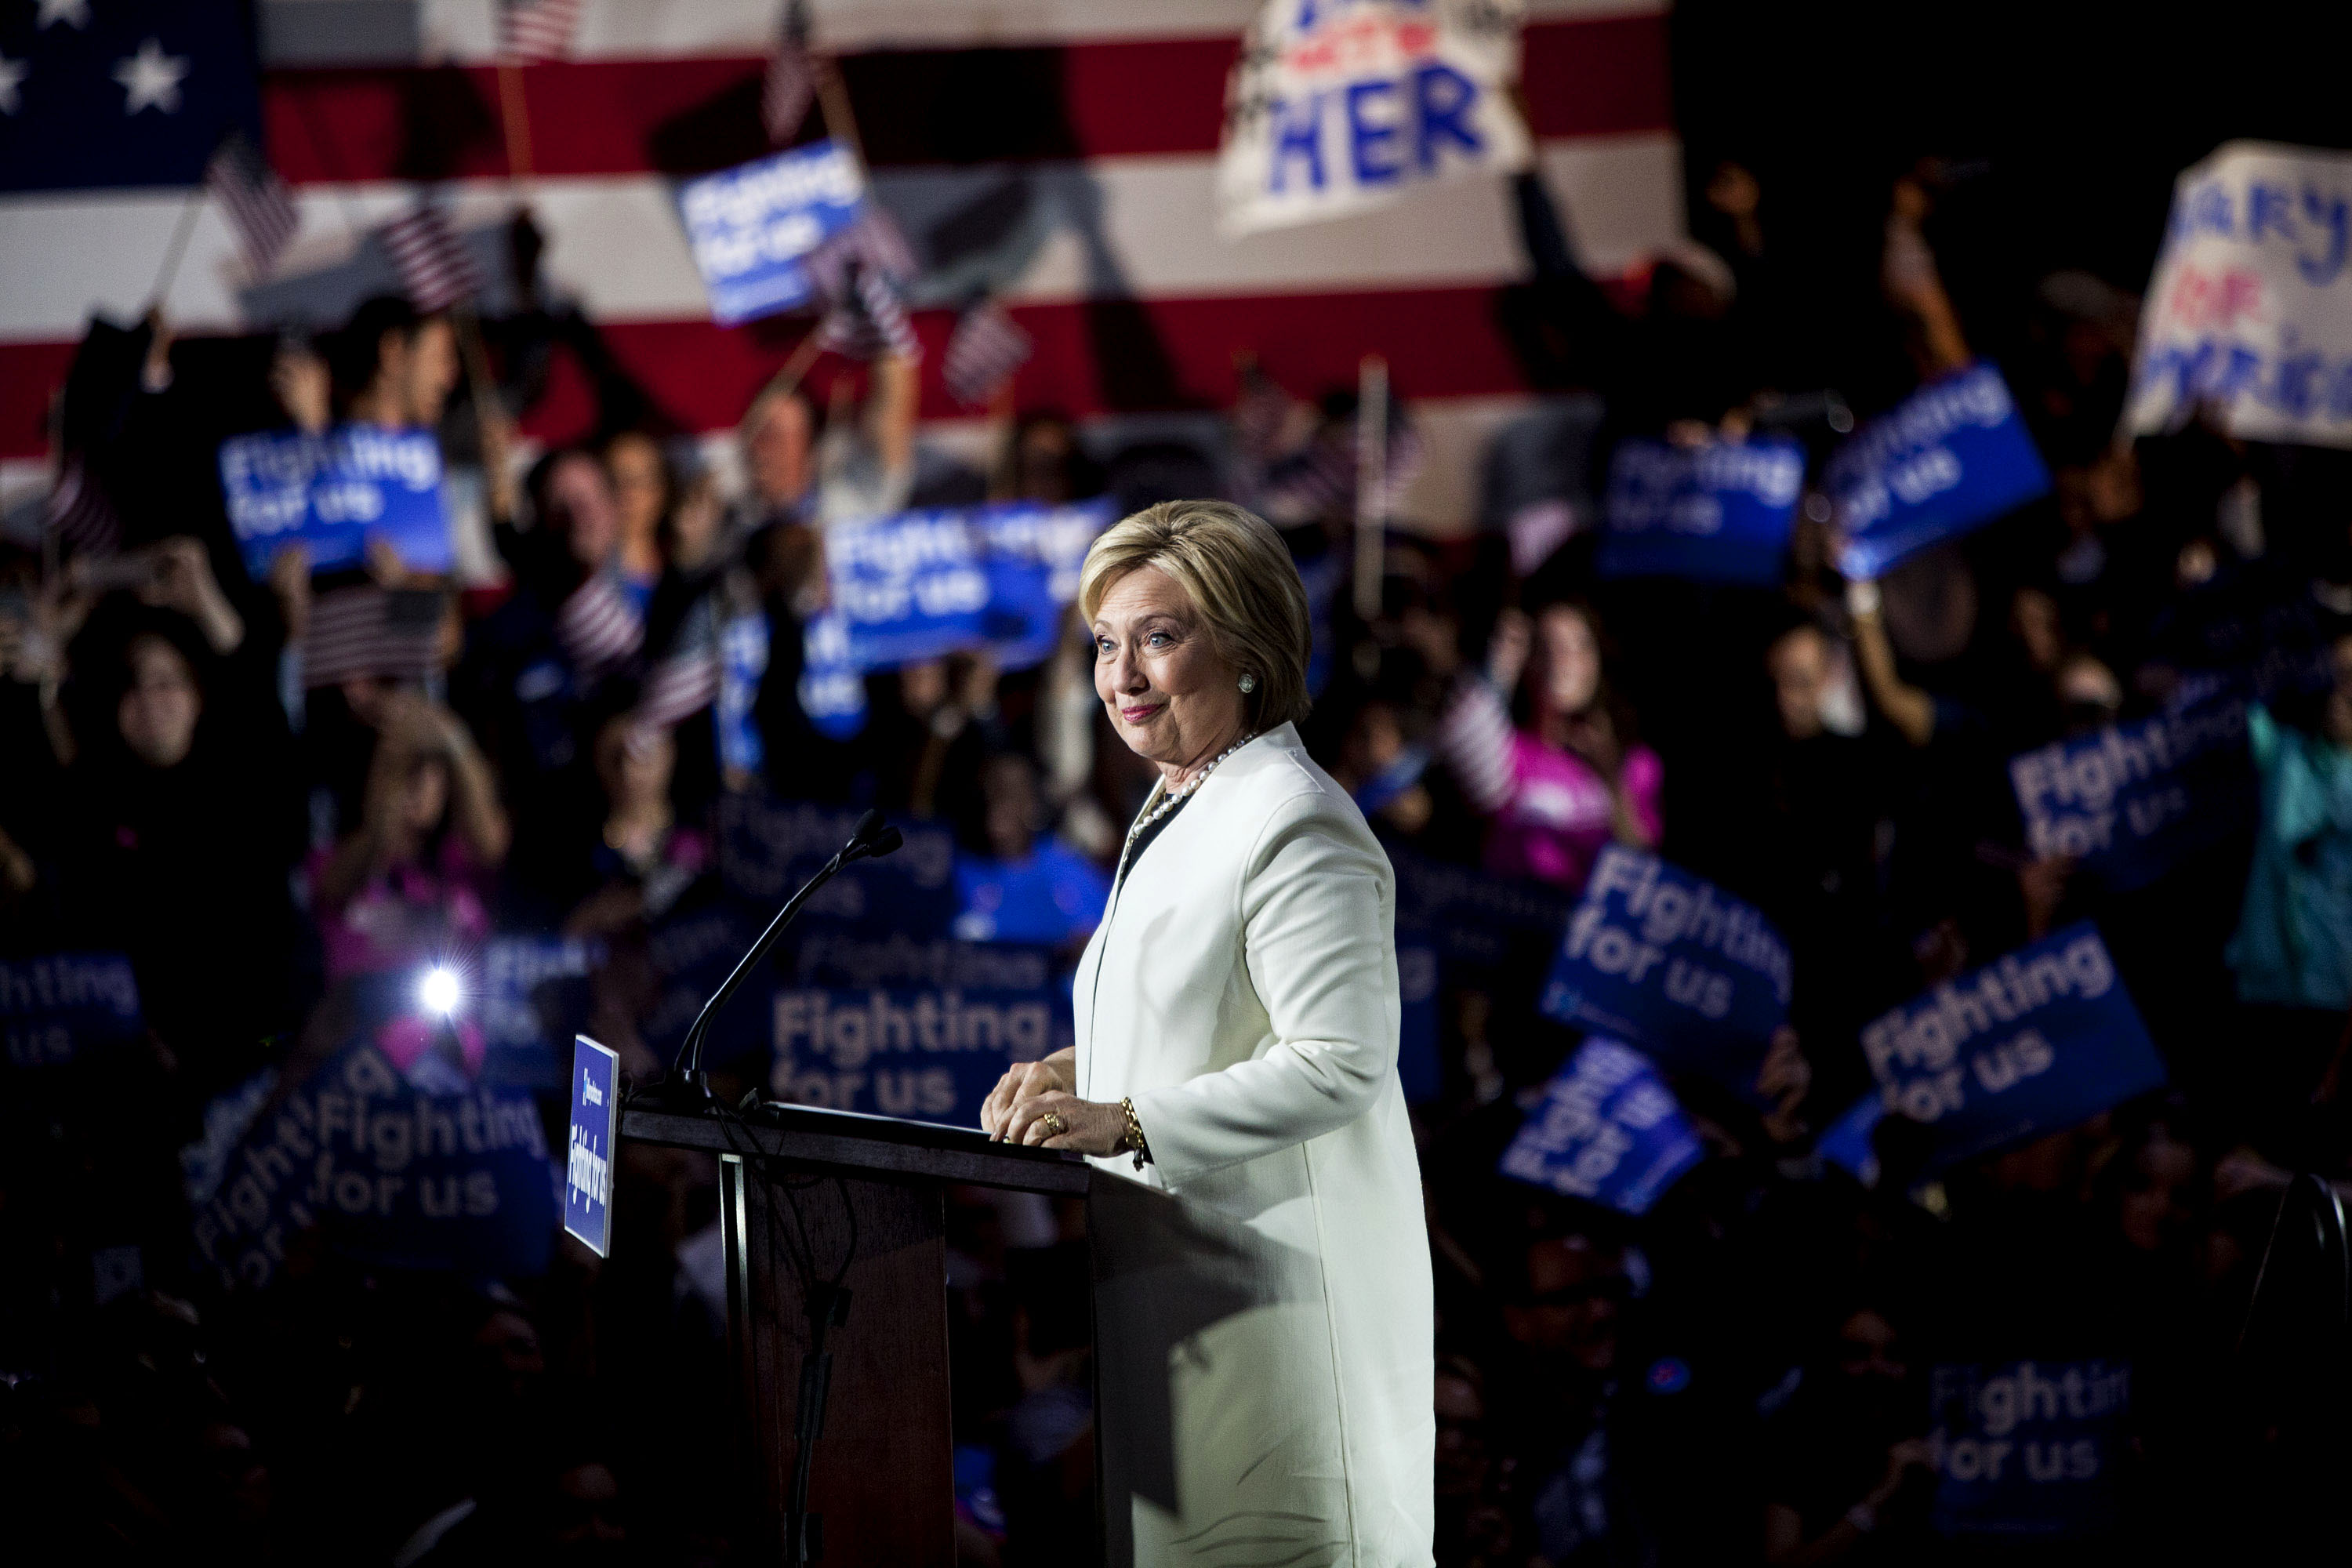 Democratic presidential candidate, former Secretary of State Hillary Clinton hosts a Super Tuesday campaign event on March 1, 2016 in Miami.